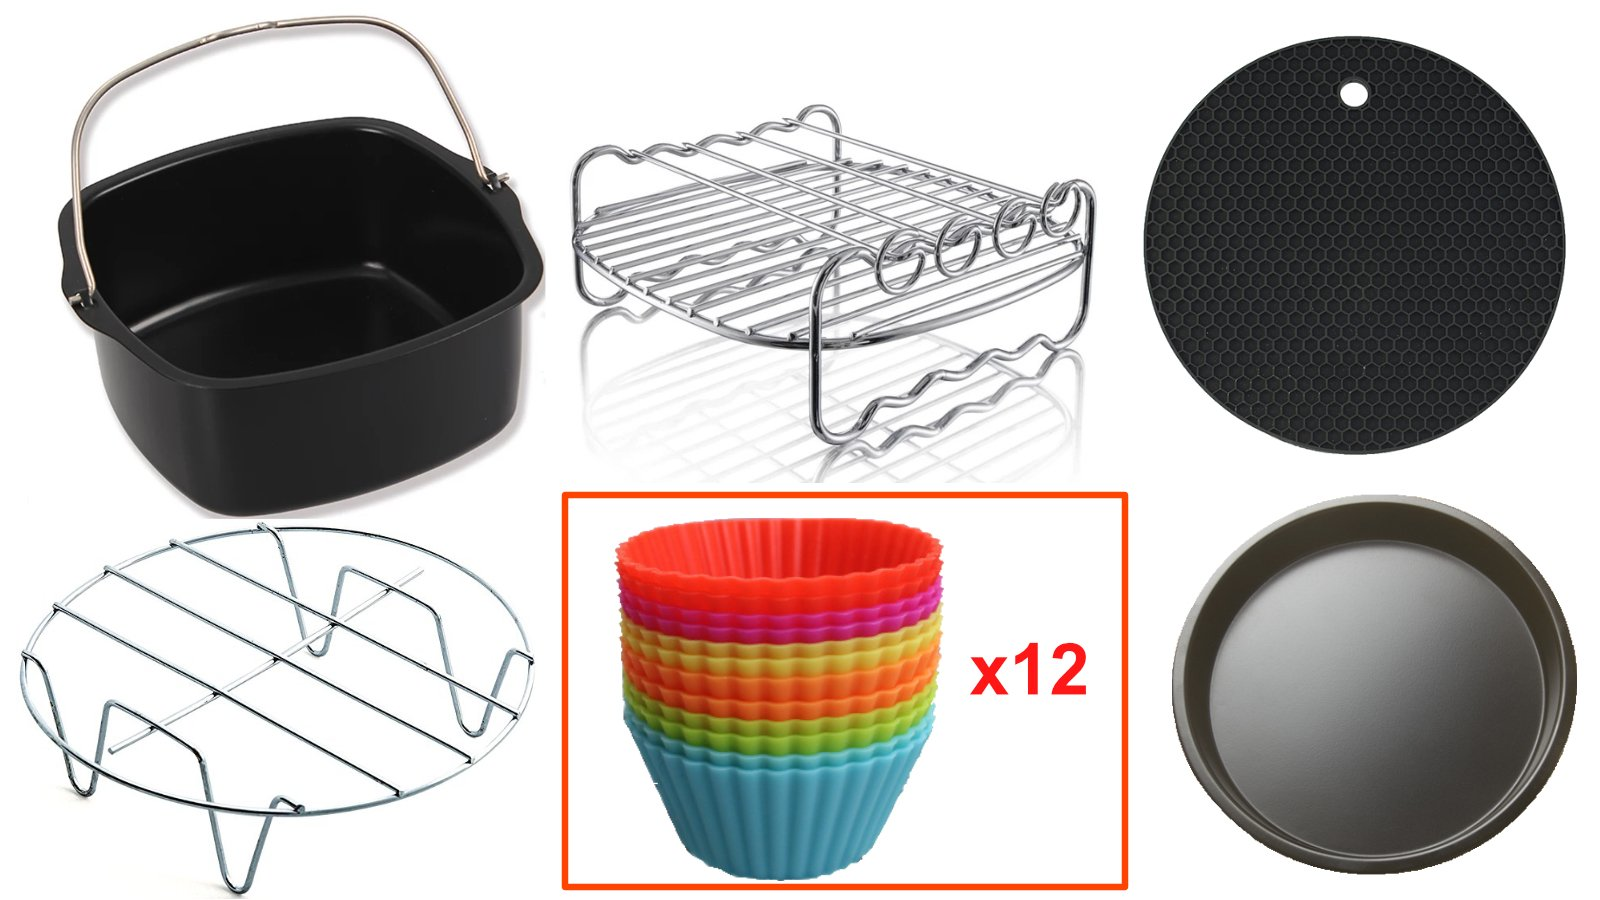 Air Fryer Accessories Compatible with Philips Avance/Viva,Cozyna,Gowise,Power Airfryer and more (Set of 17. Fits 3.7QT and above Air Fryers, Multi color)